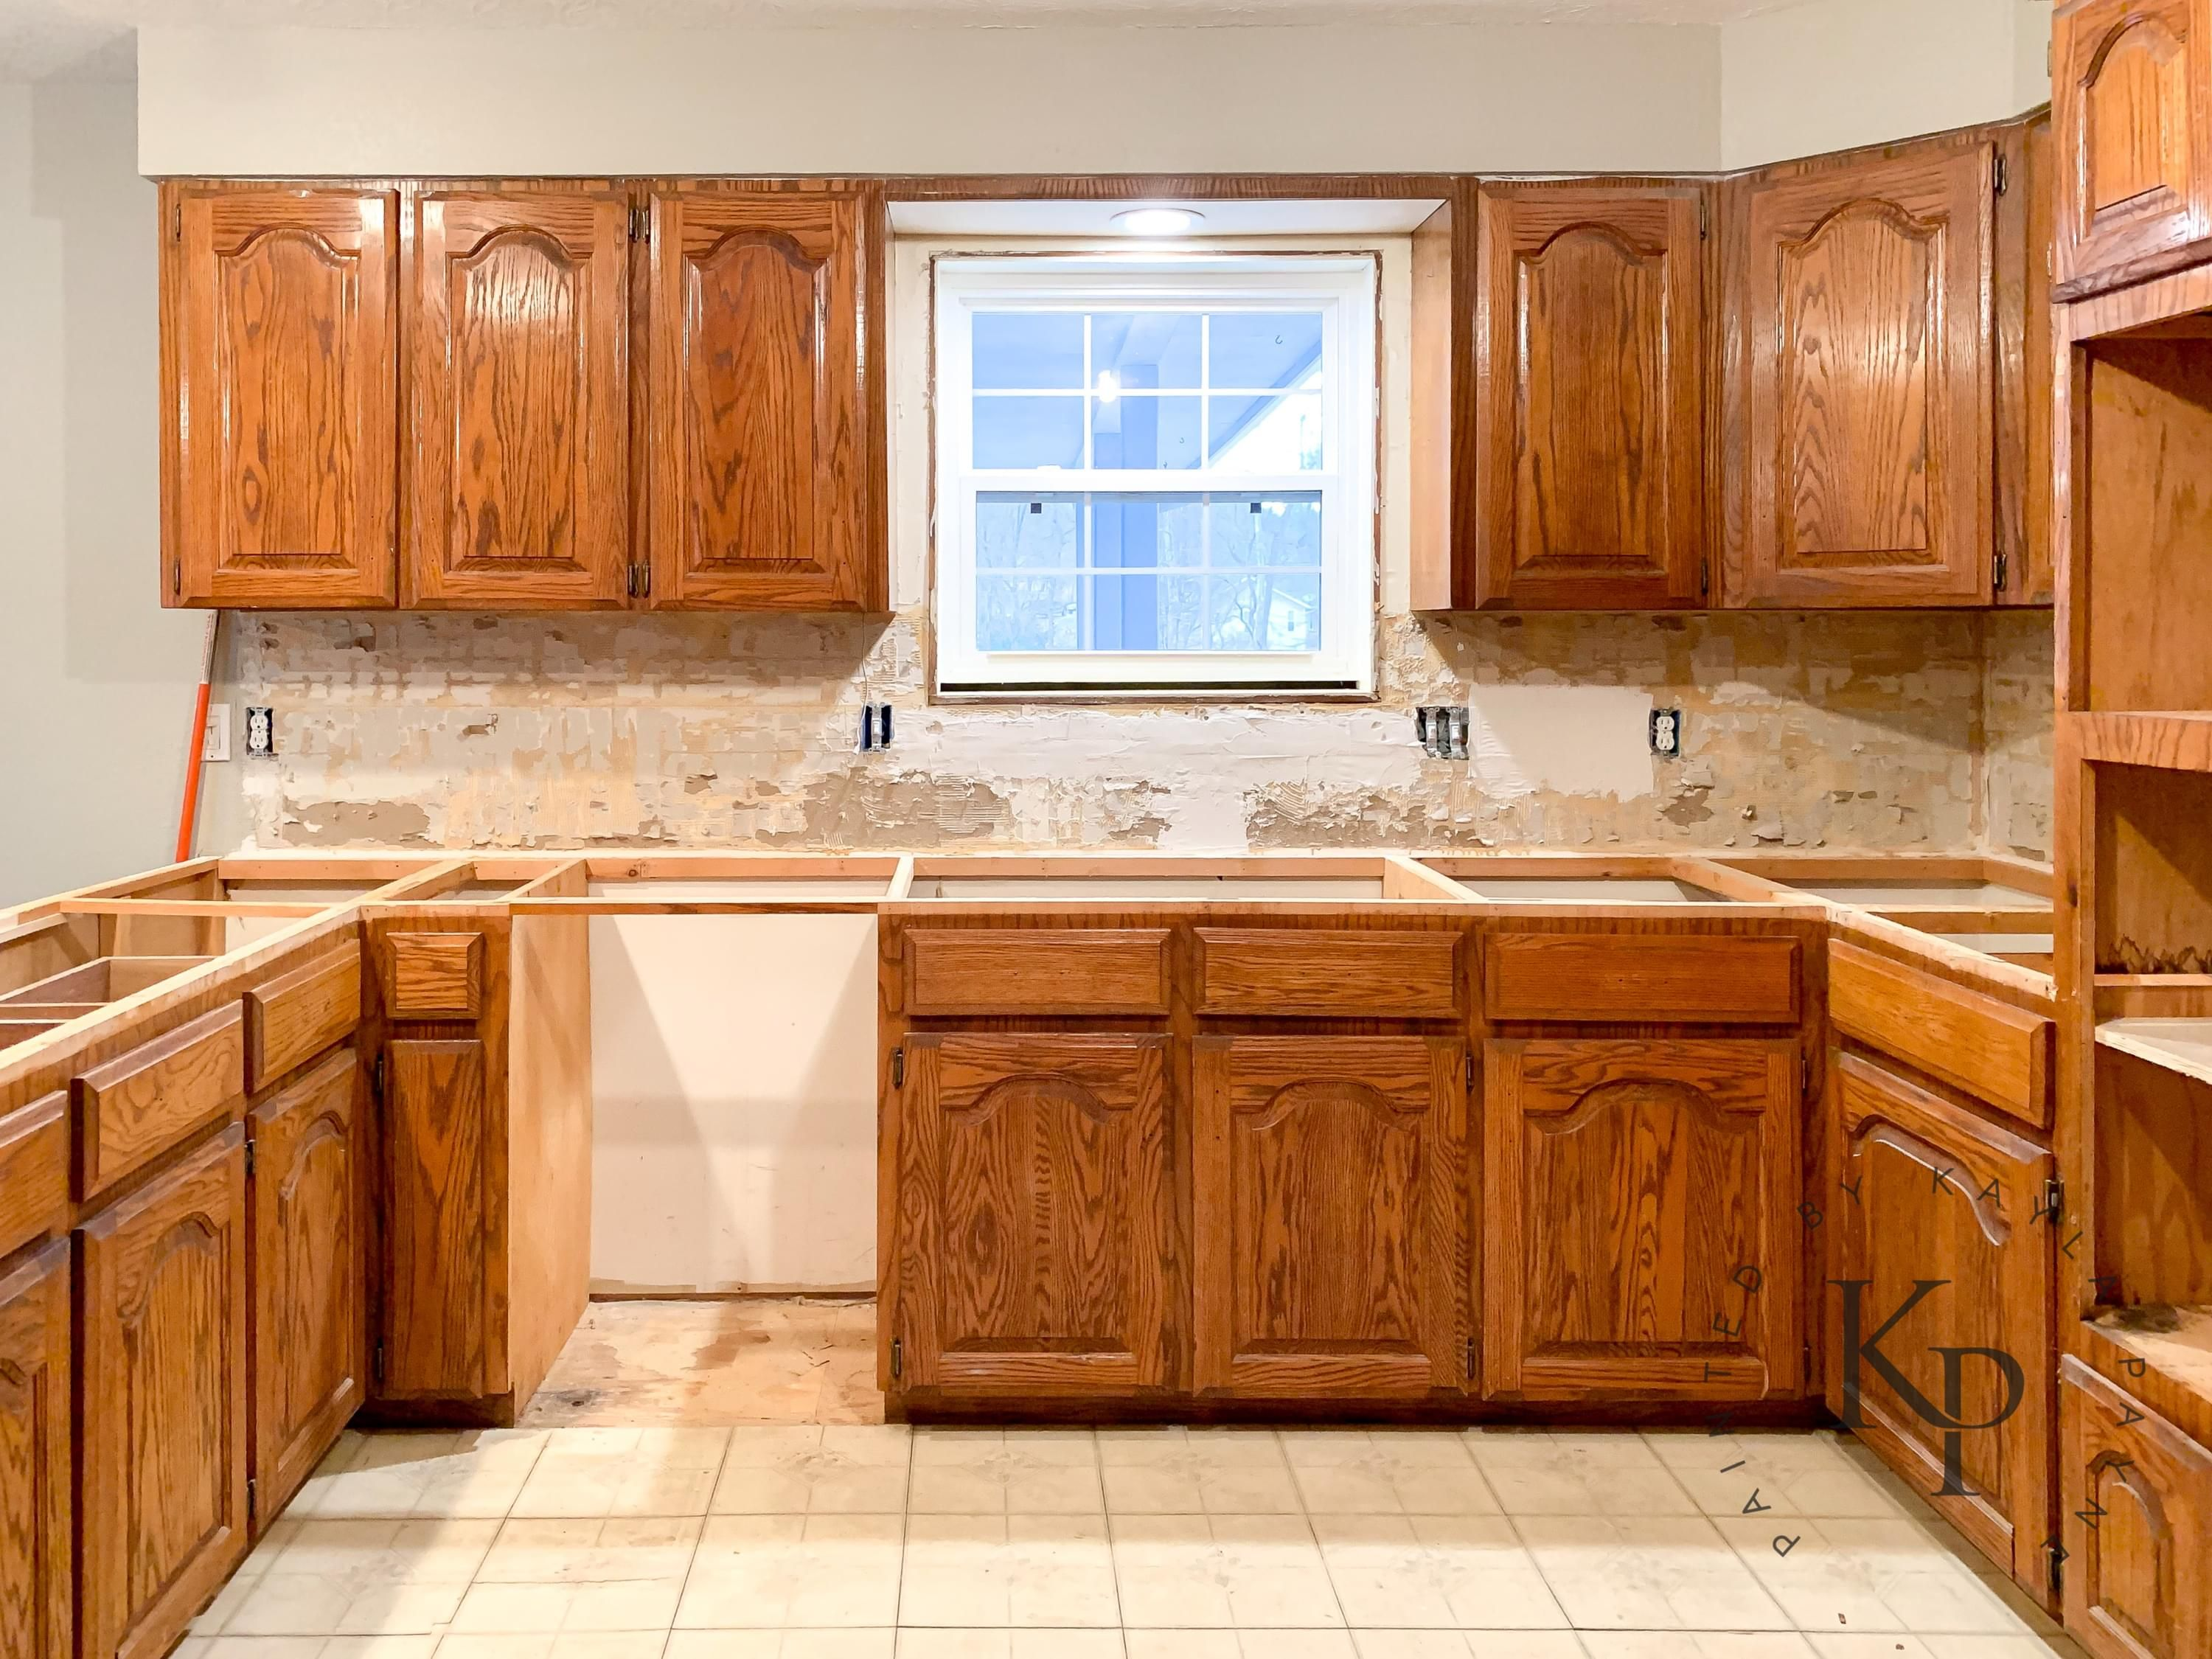 How To Paint Your Cabinets Like A Pro In 2020 Kitchen Renovation Kitchen Cabinets Painting Cabinets Diy